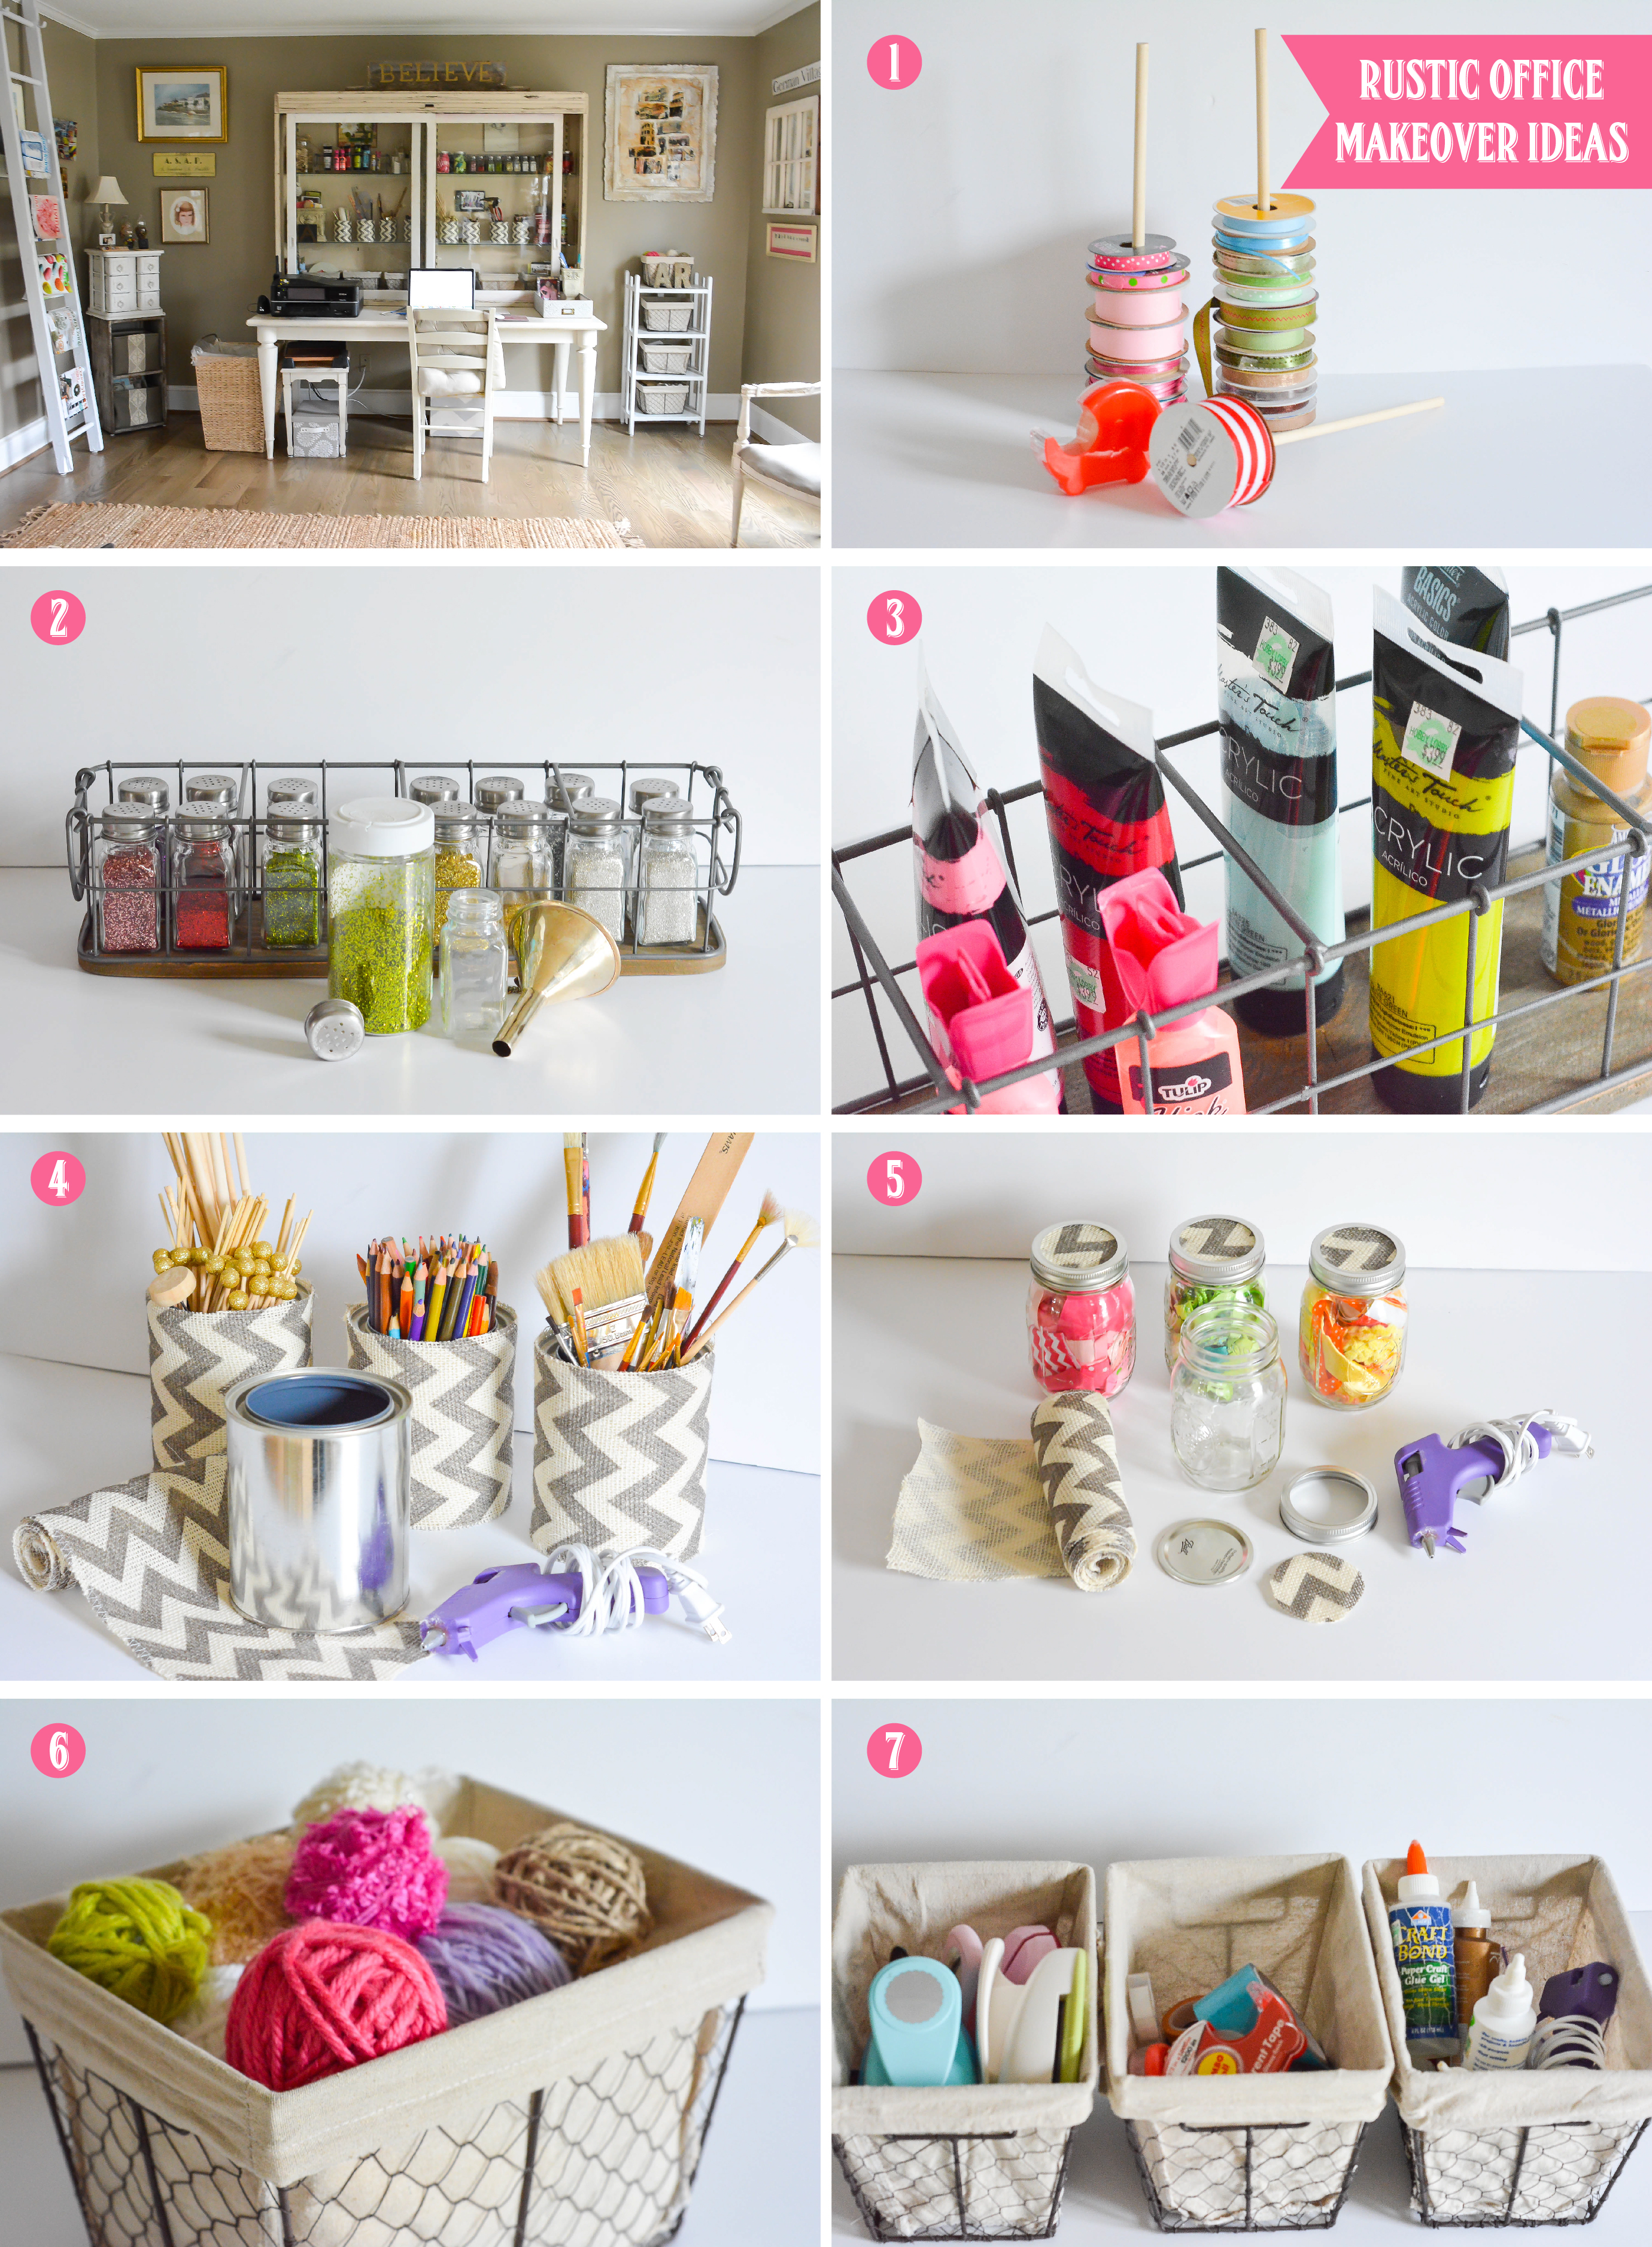 How To Organize Your Office ruff draft: spring cleaning - organize your office with a rustic